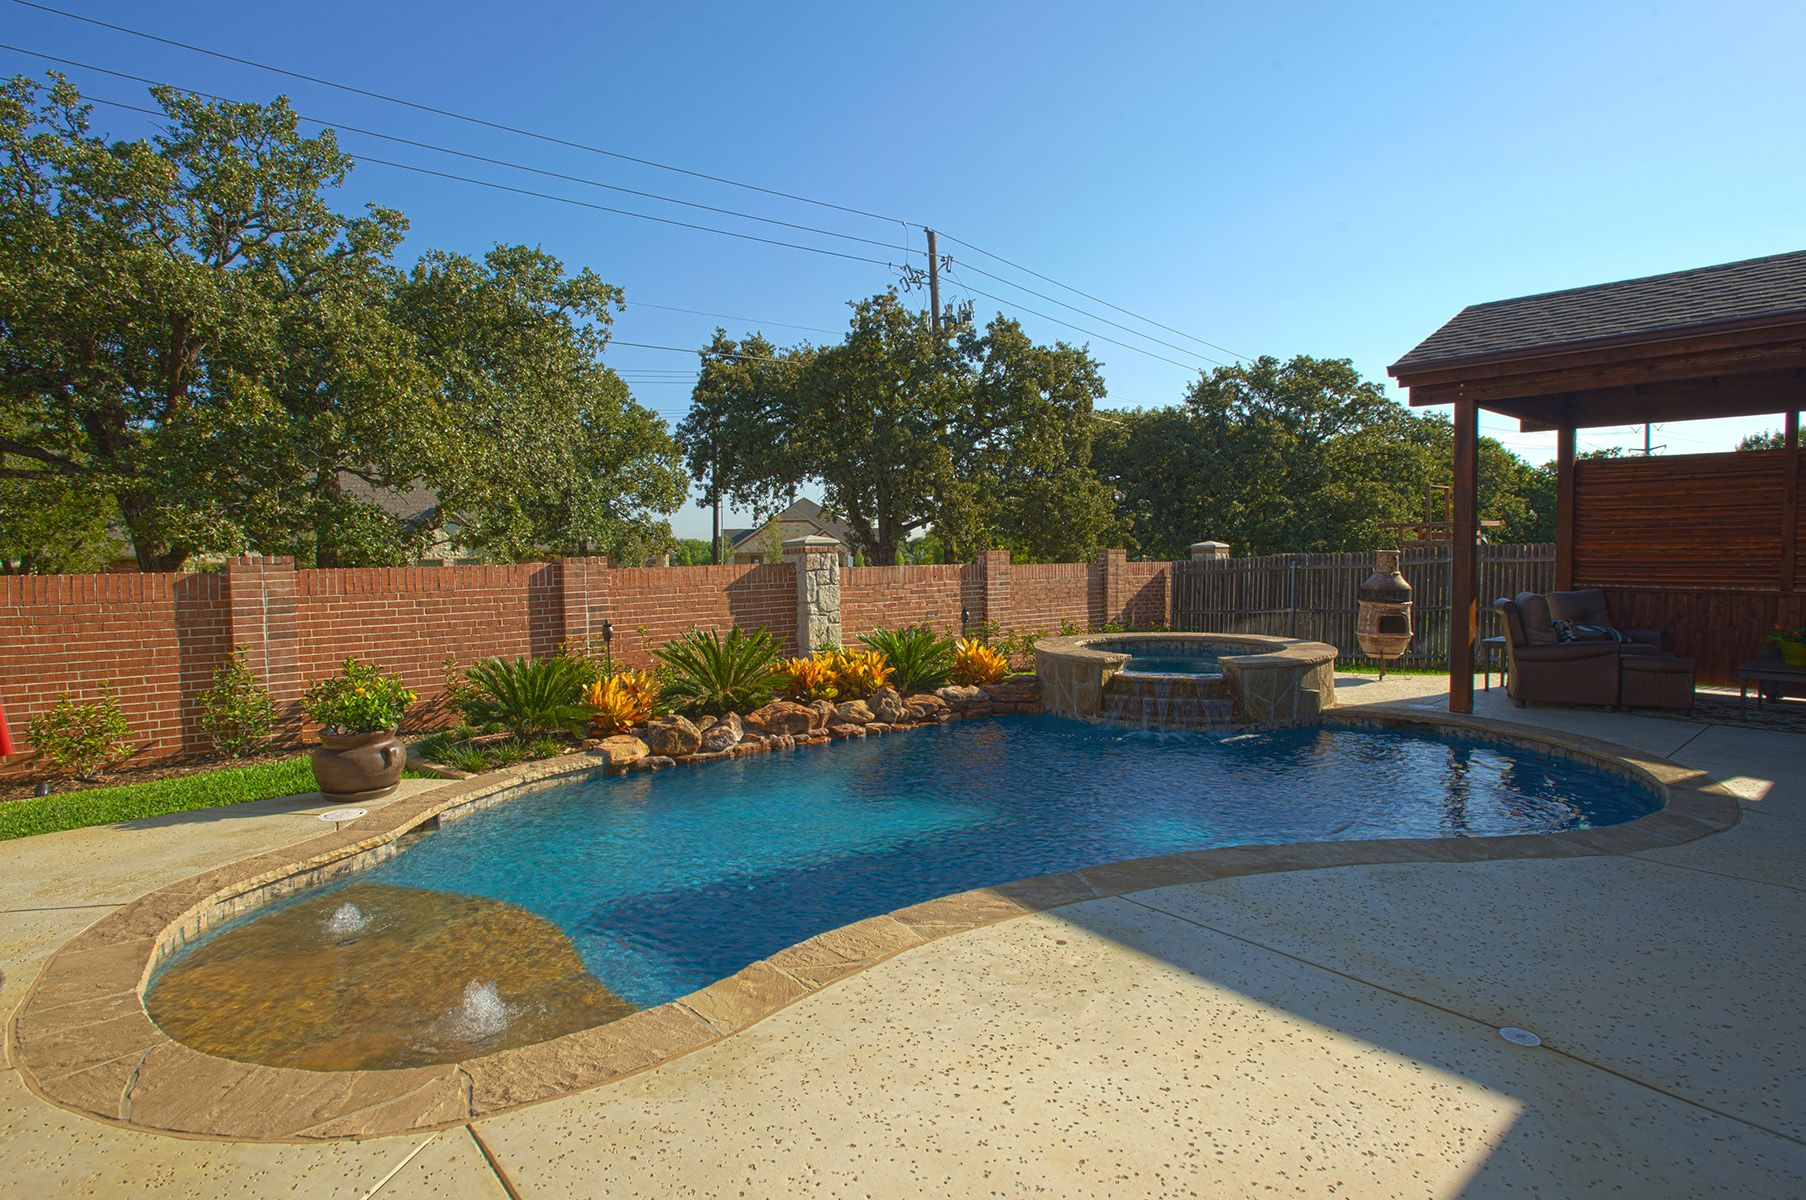 swimming pool beach entry new pool owner keller tx introduce yourself trouble free. Black Bedroom Furniture Sets. Home Design Ideas